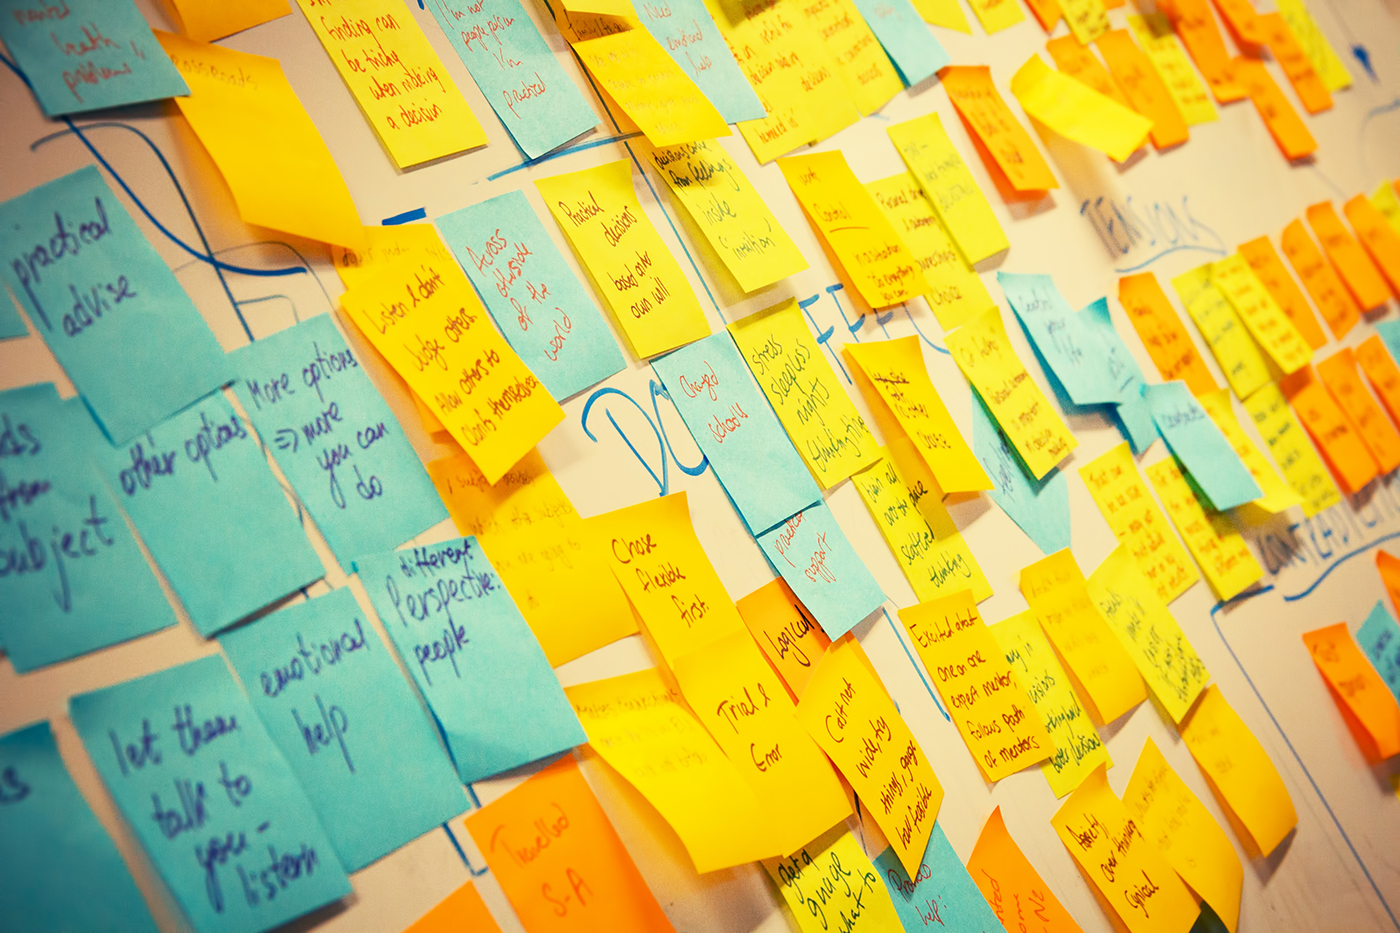 A whiteboard covered in Post-It notes.